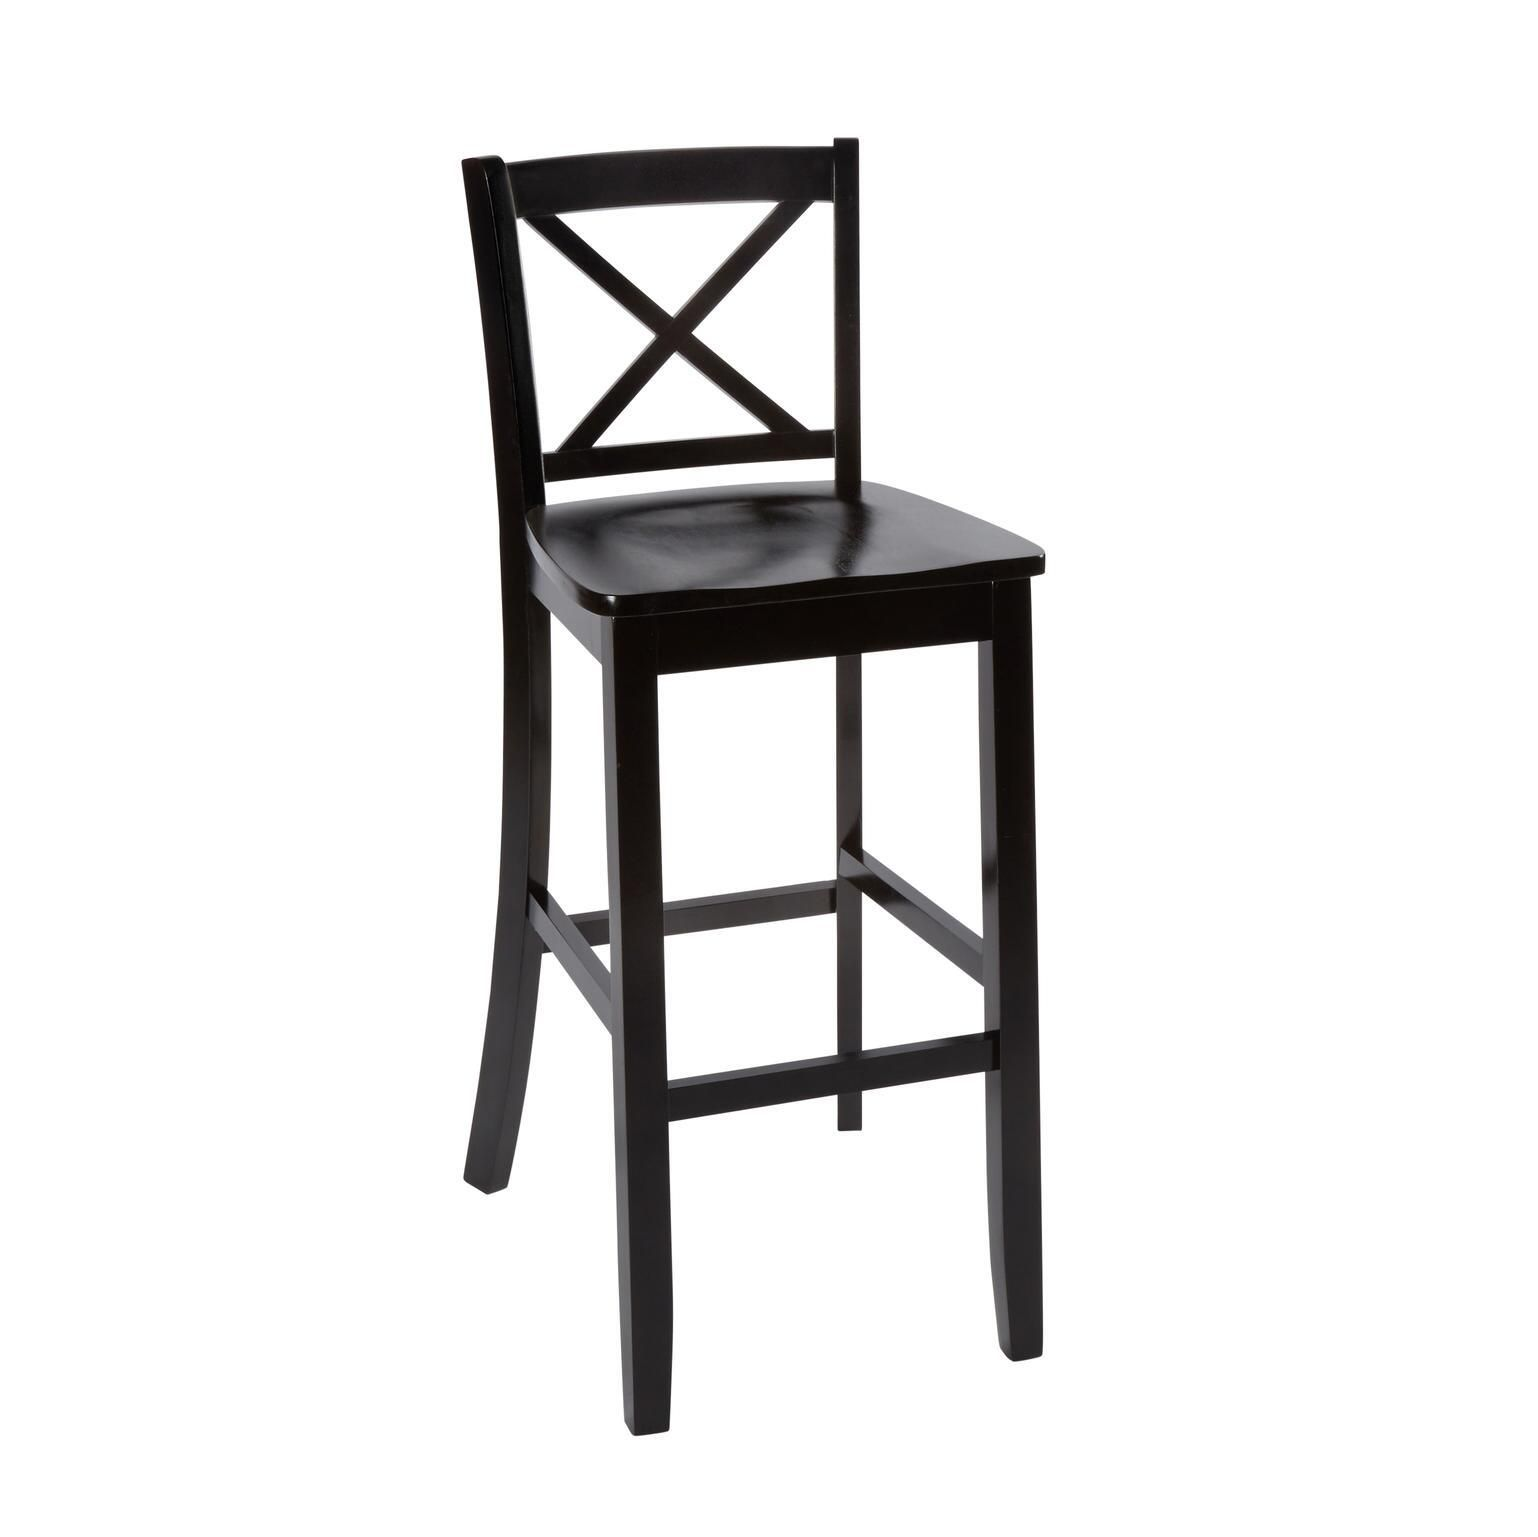 Cool 30 Black X Back Wood Barstool Barstool Wood Black Gmtry Best Dining Table And Chair Ideas Images Gmtryco